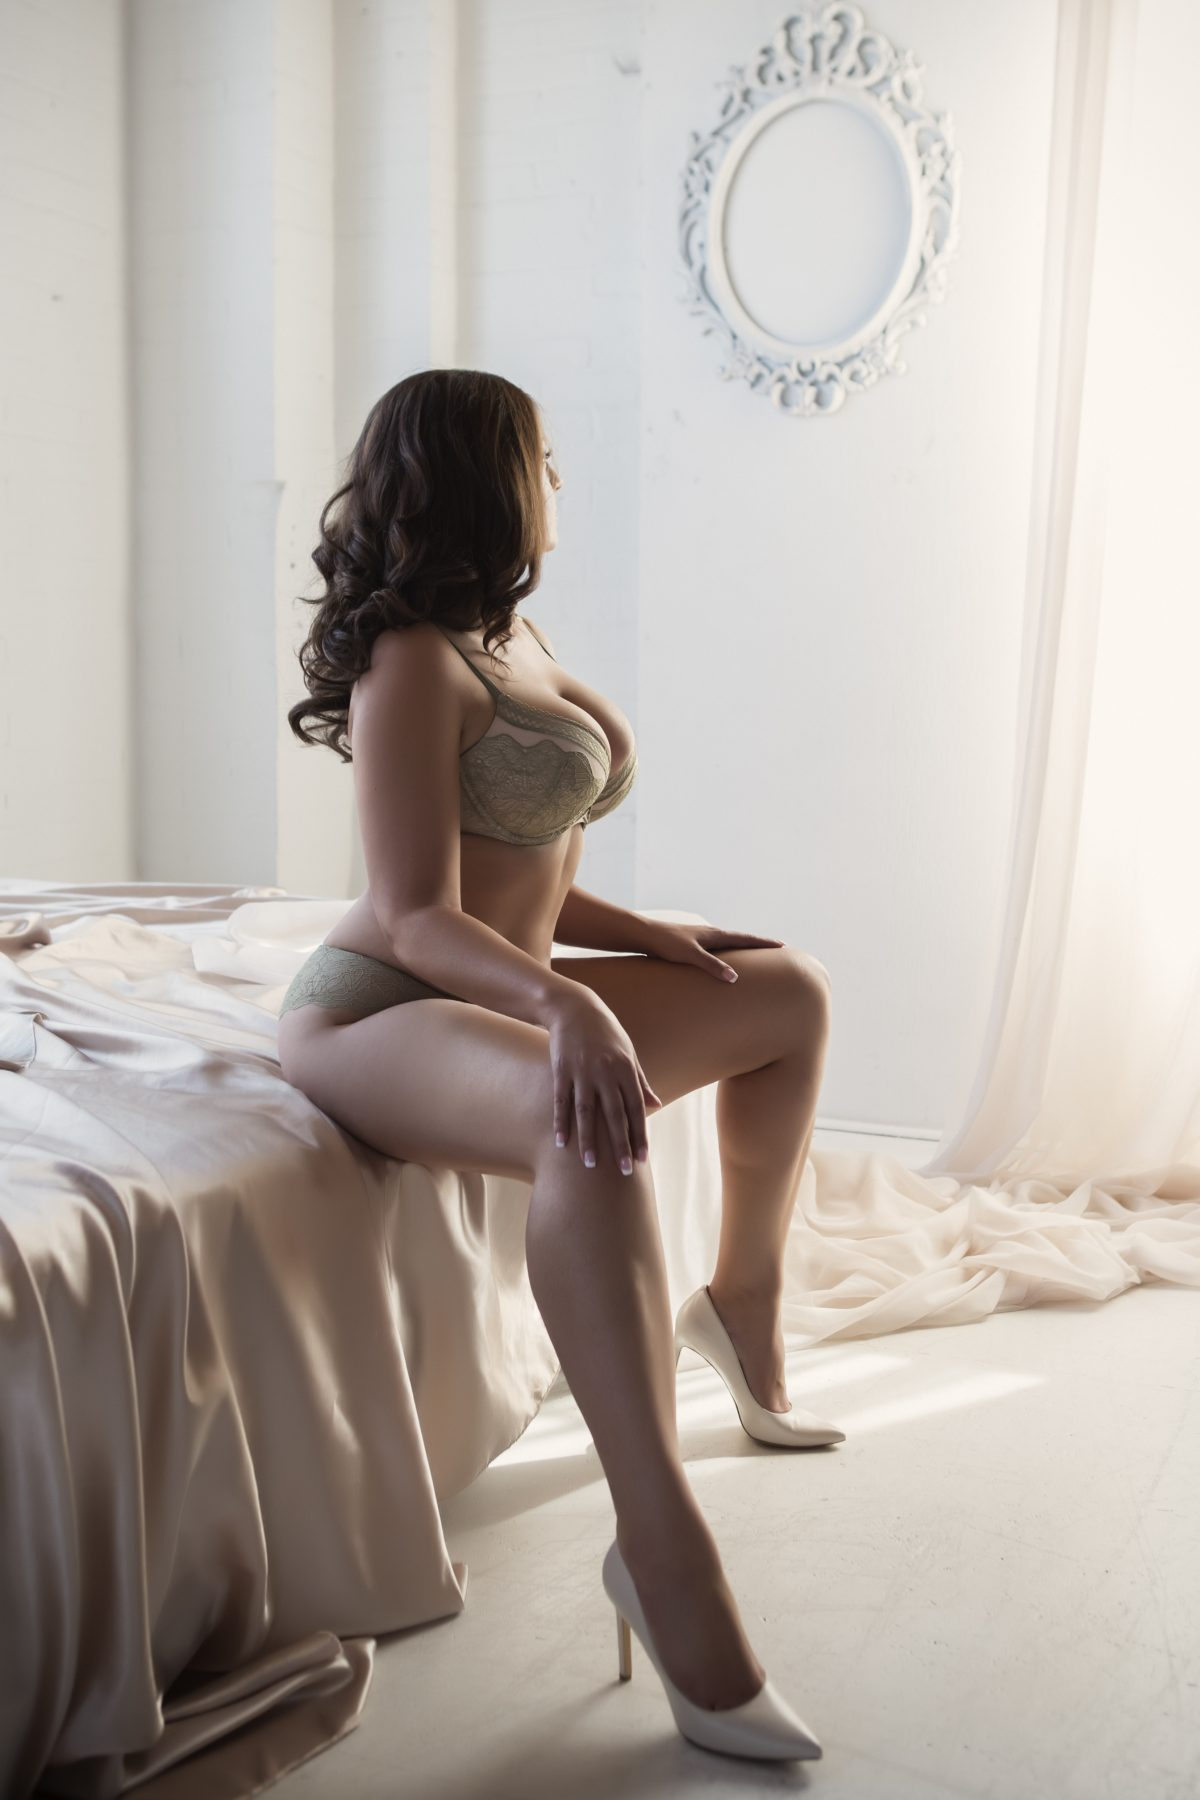 Toronto escorts companion upscale Evelyn Duo Couple-friendly Disability-friendly Non-smoking Mature Curvy Breasts Natural Brunette European Tattoos Large